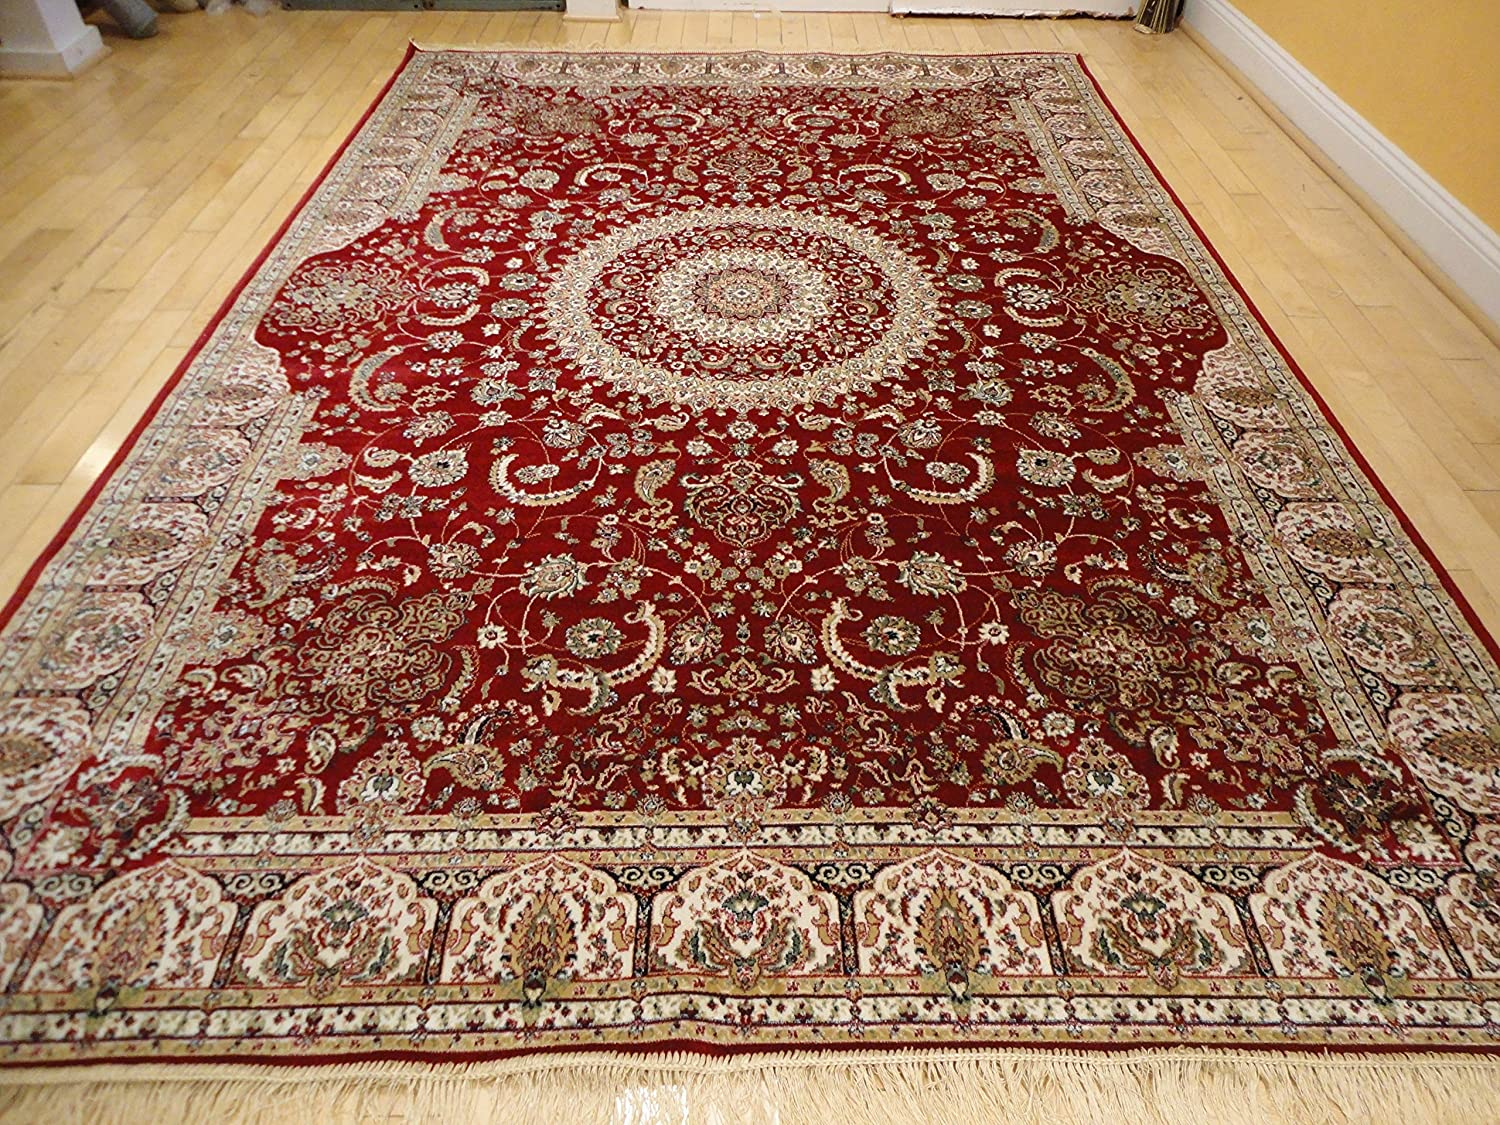 Import persian silk ivory area rugs 8x12 red living room rug for Living room rugs amazon